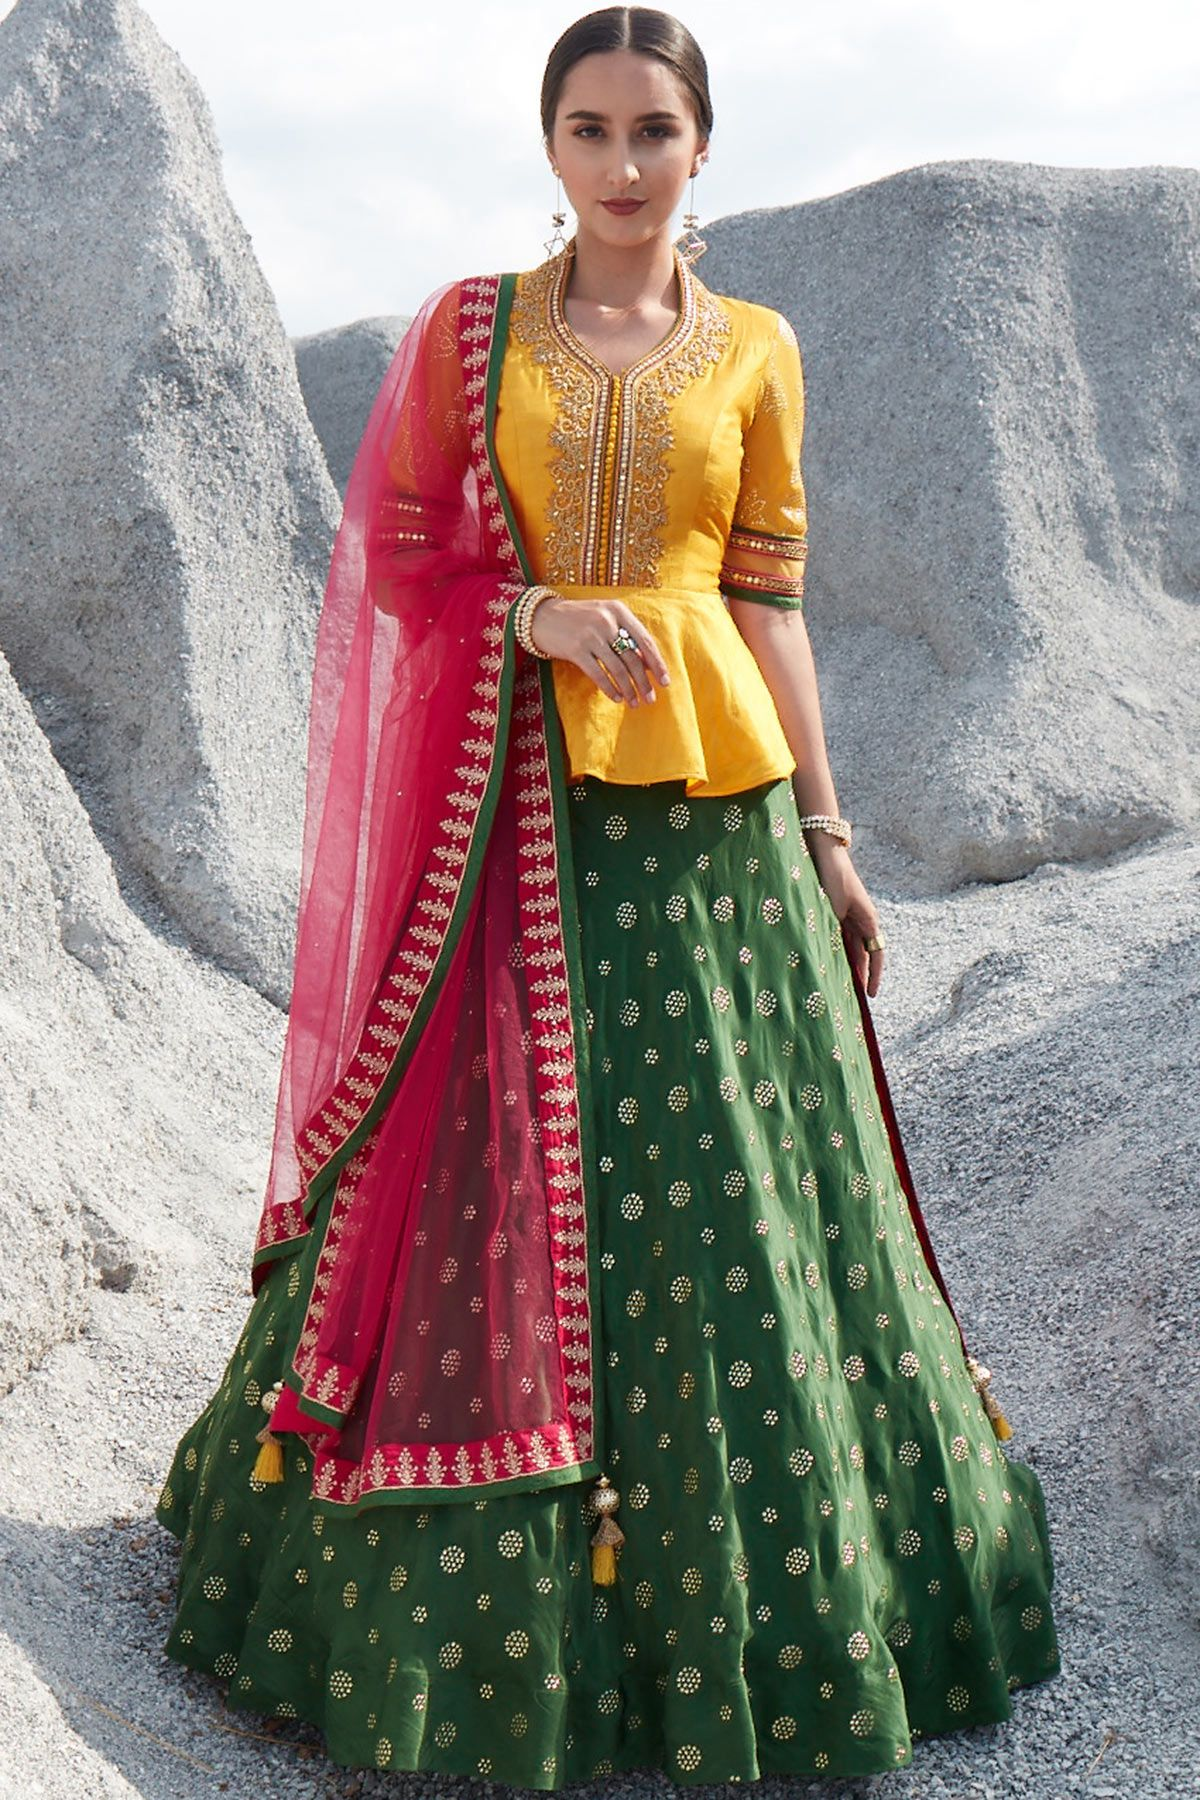 Designed with new fangled style this designer lehenga has a peplum top with a flared silhouette ...